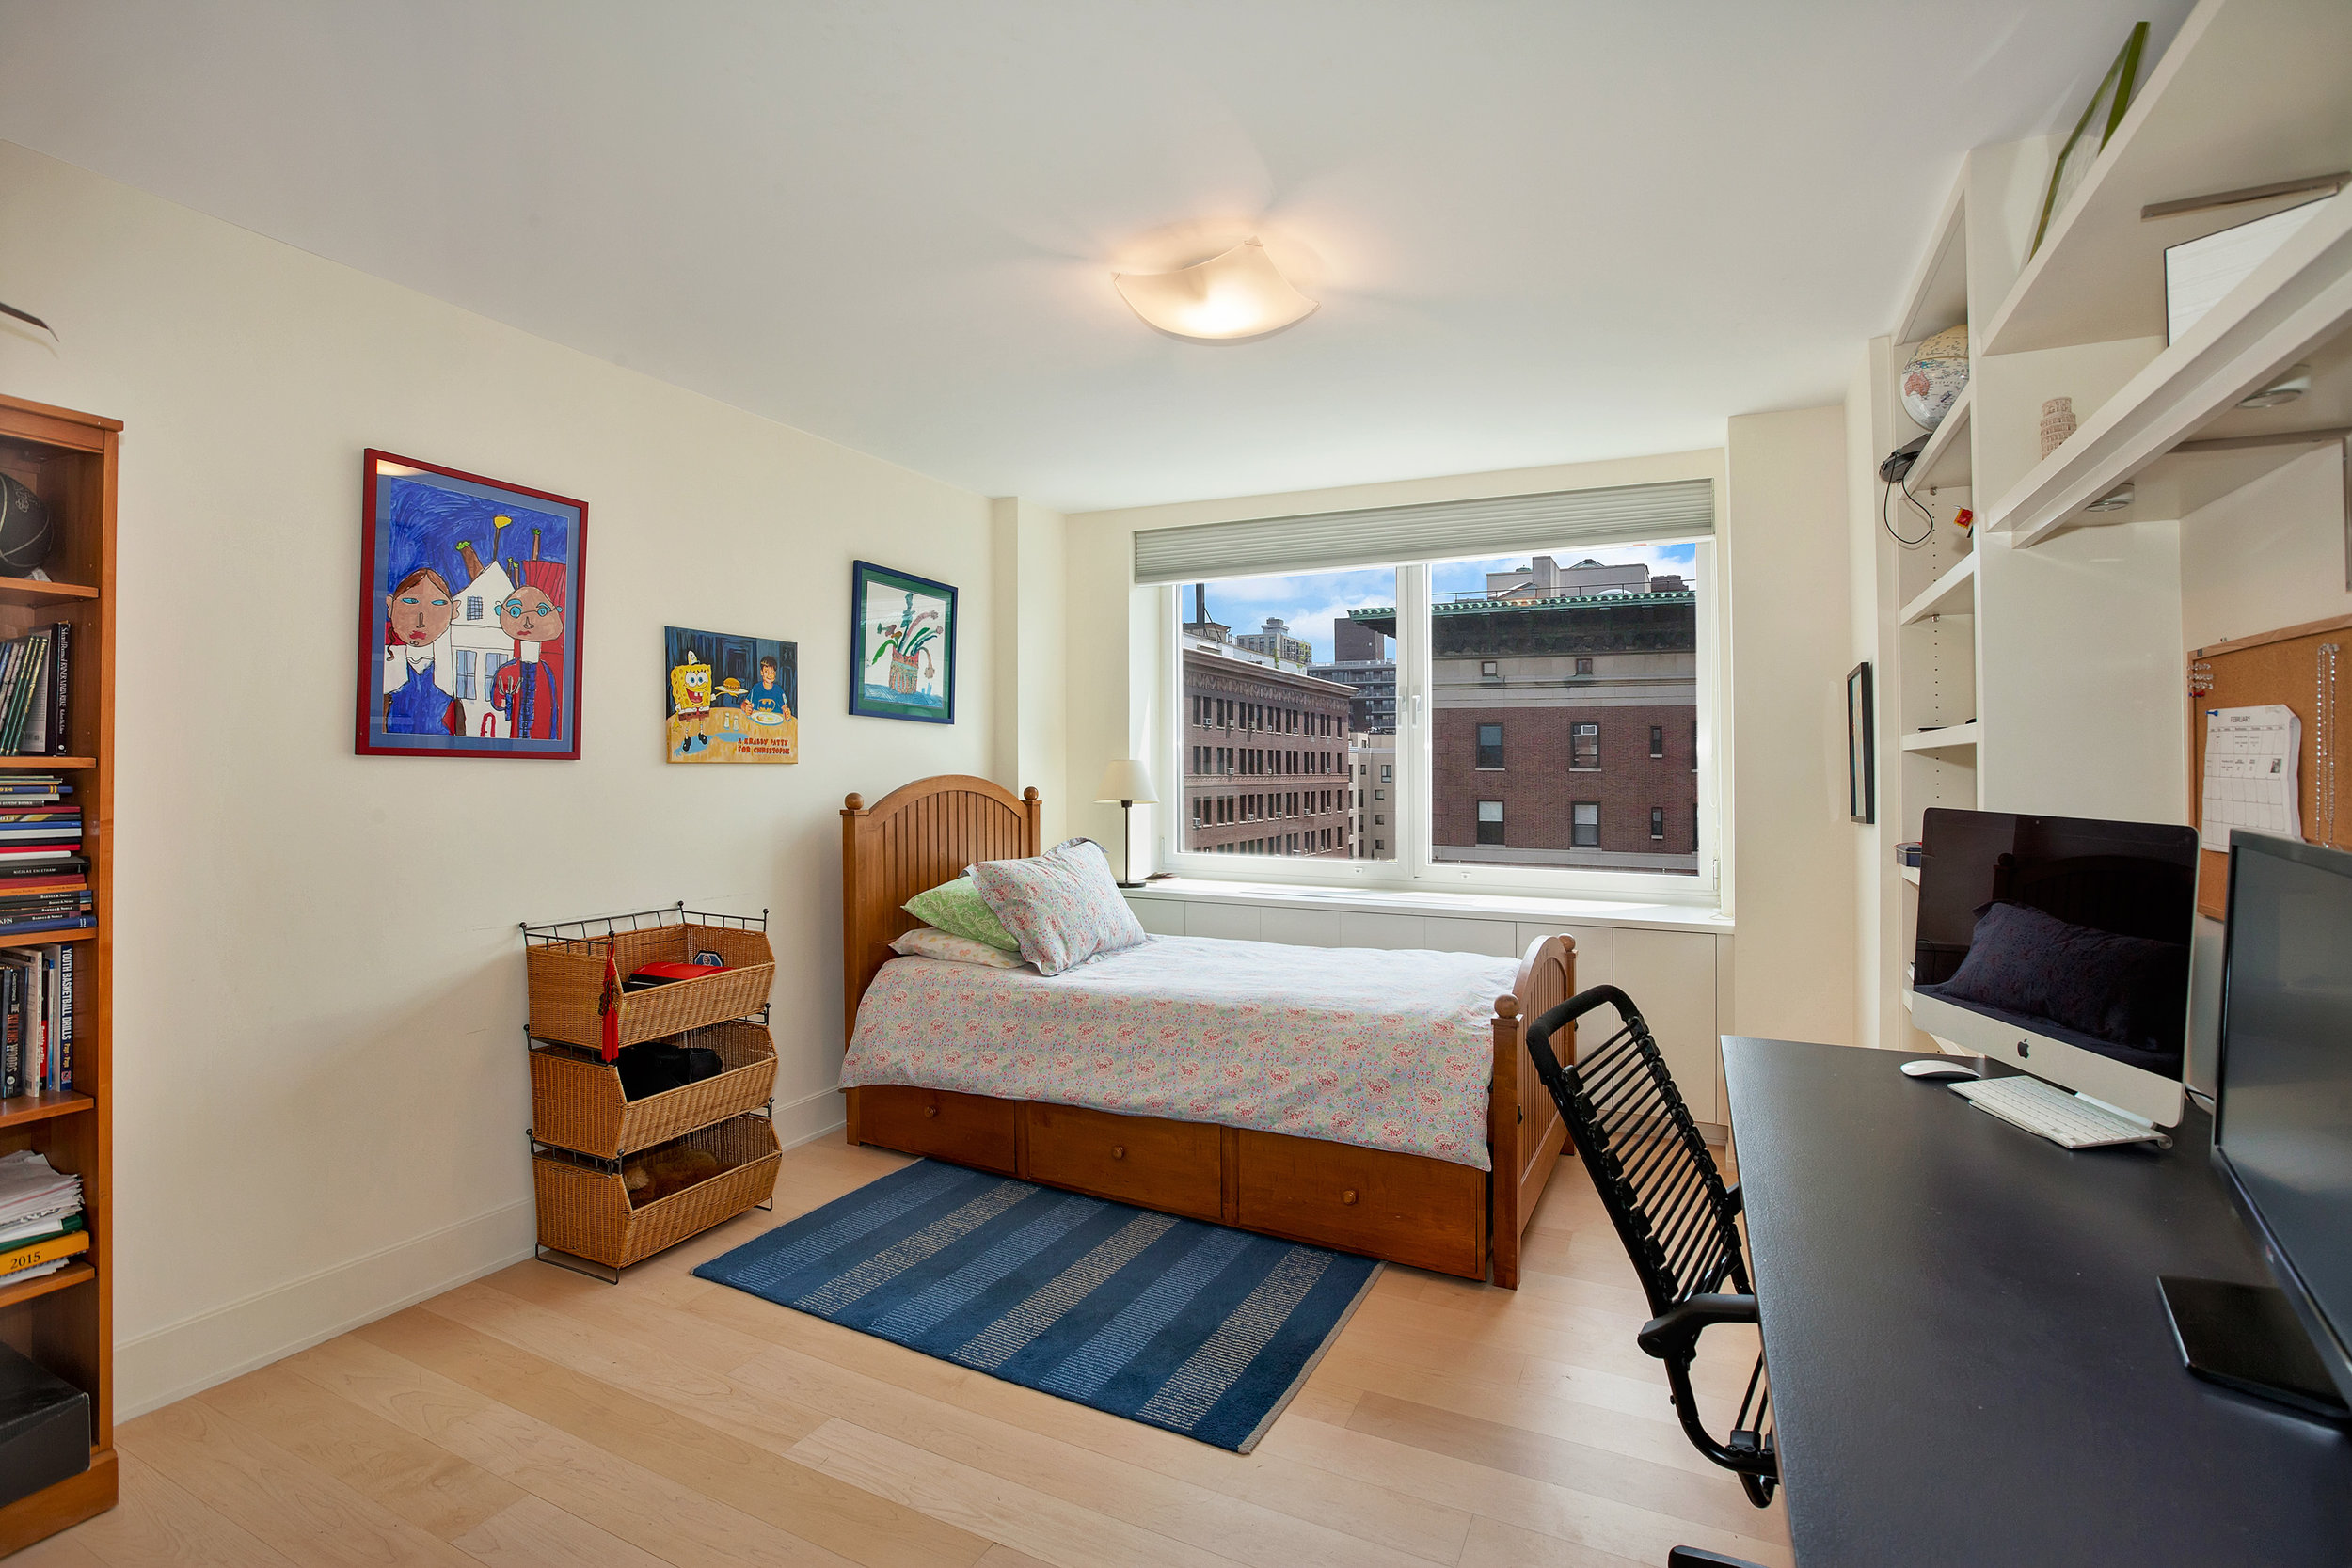 250West90thStreet17K_Dylan_Hildreth-Hoffman_DouglasElliman_Photography_28828951_high_res.jpg